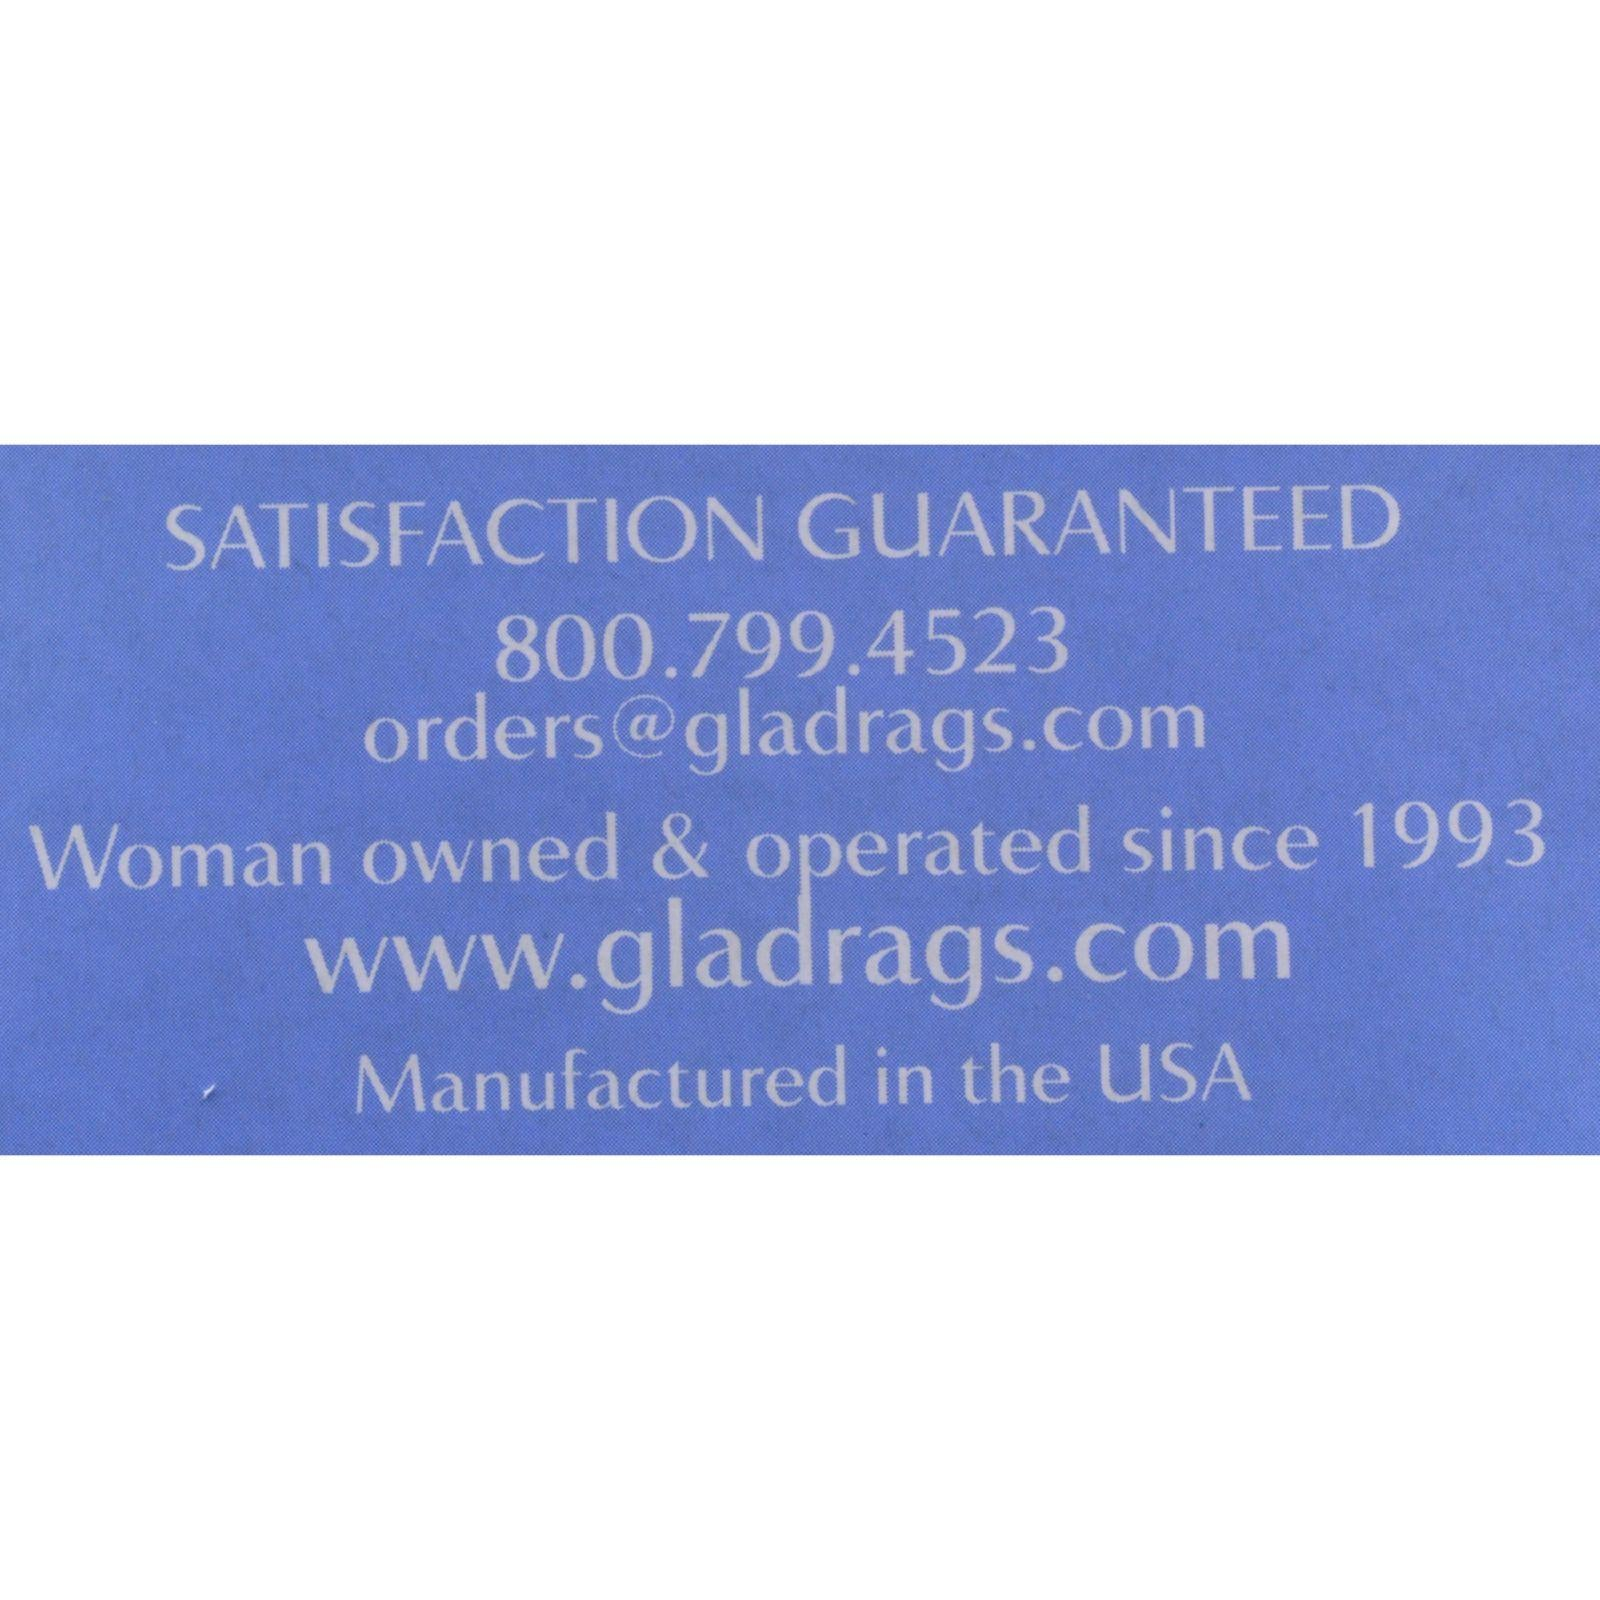 Gladrags Organic Cotton Day Pad - Undyed - 3 Pack (Reusable Sanitary Napkin)